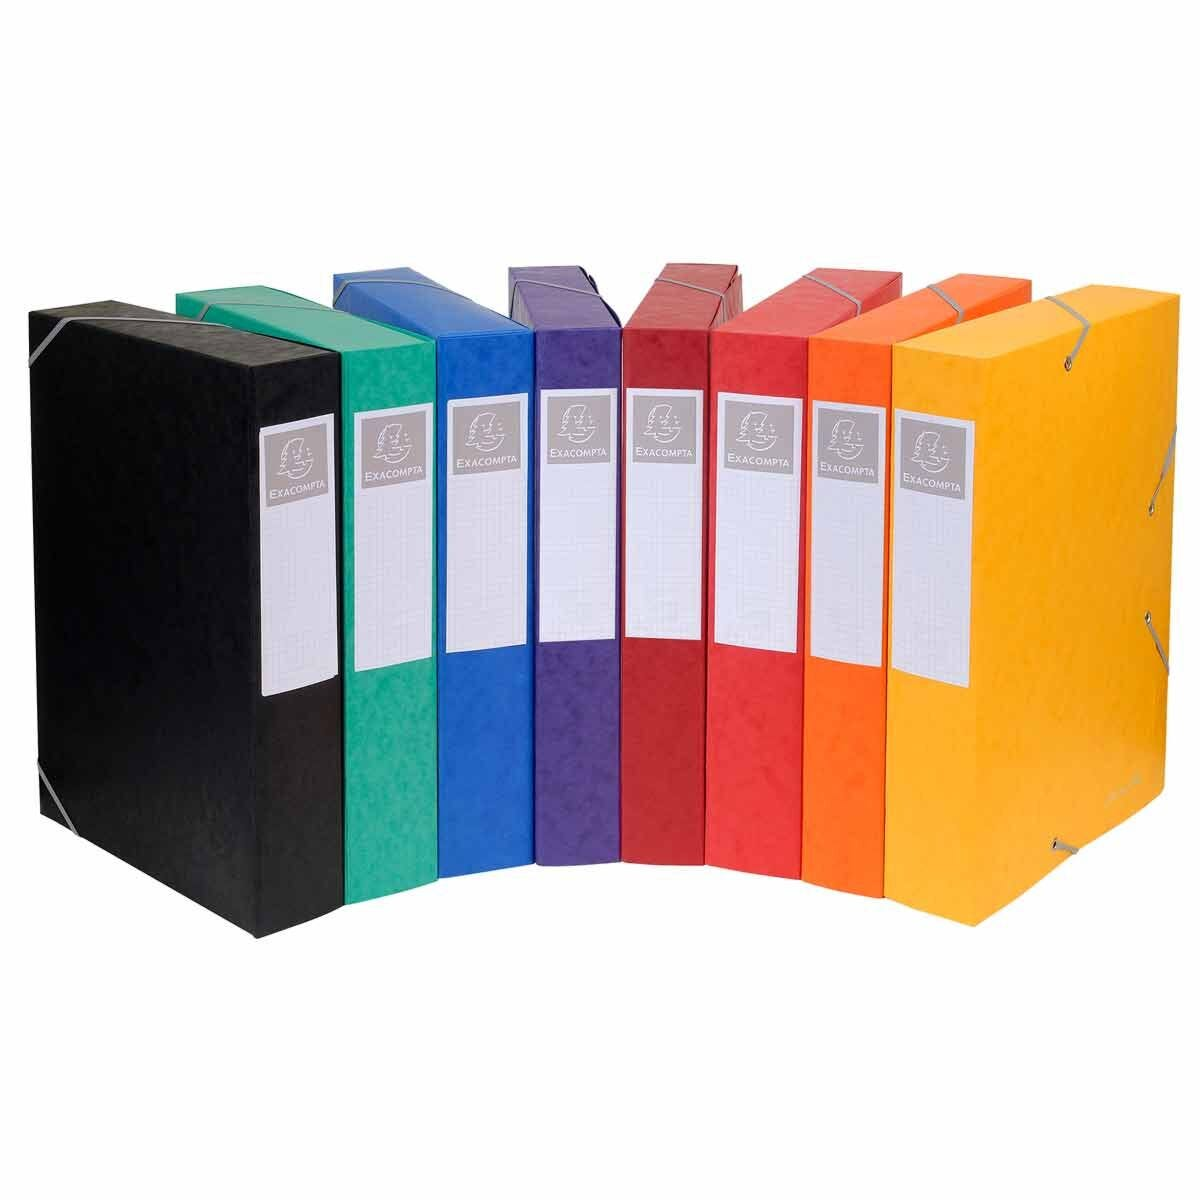 Exacompta Cartobox Box File 50mm 600g A4 Pack of 10 Assorted